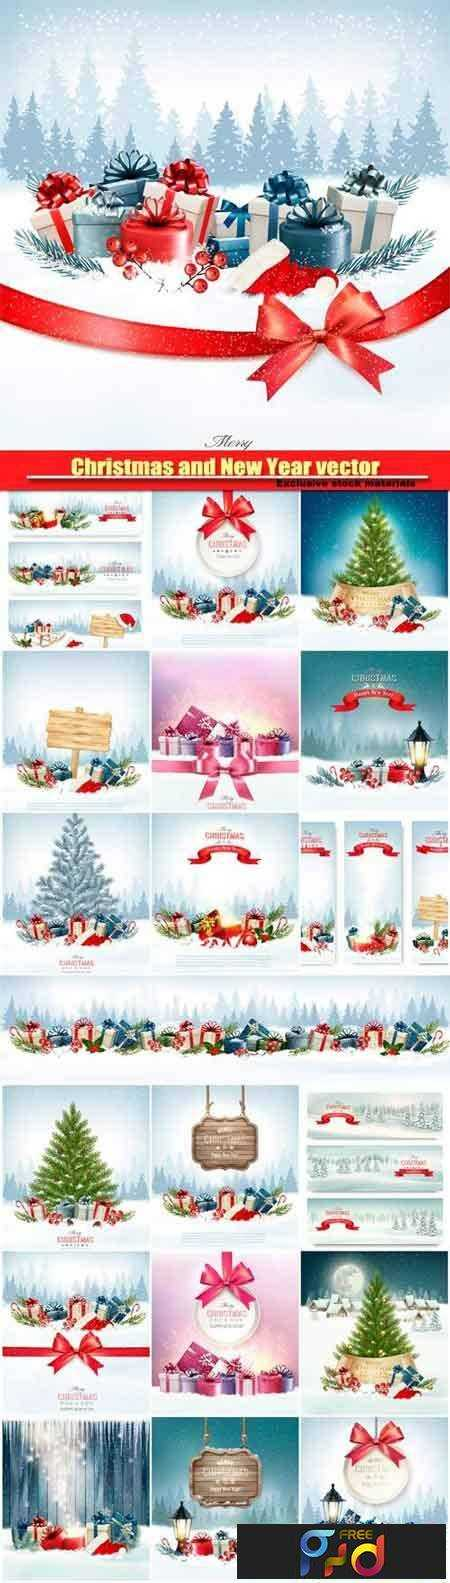 freepsdvn-com_1480653116_christmas-and-new-year-vector-holiday-background-christmas-tree-and-presents